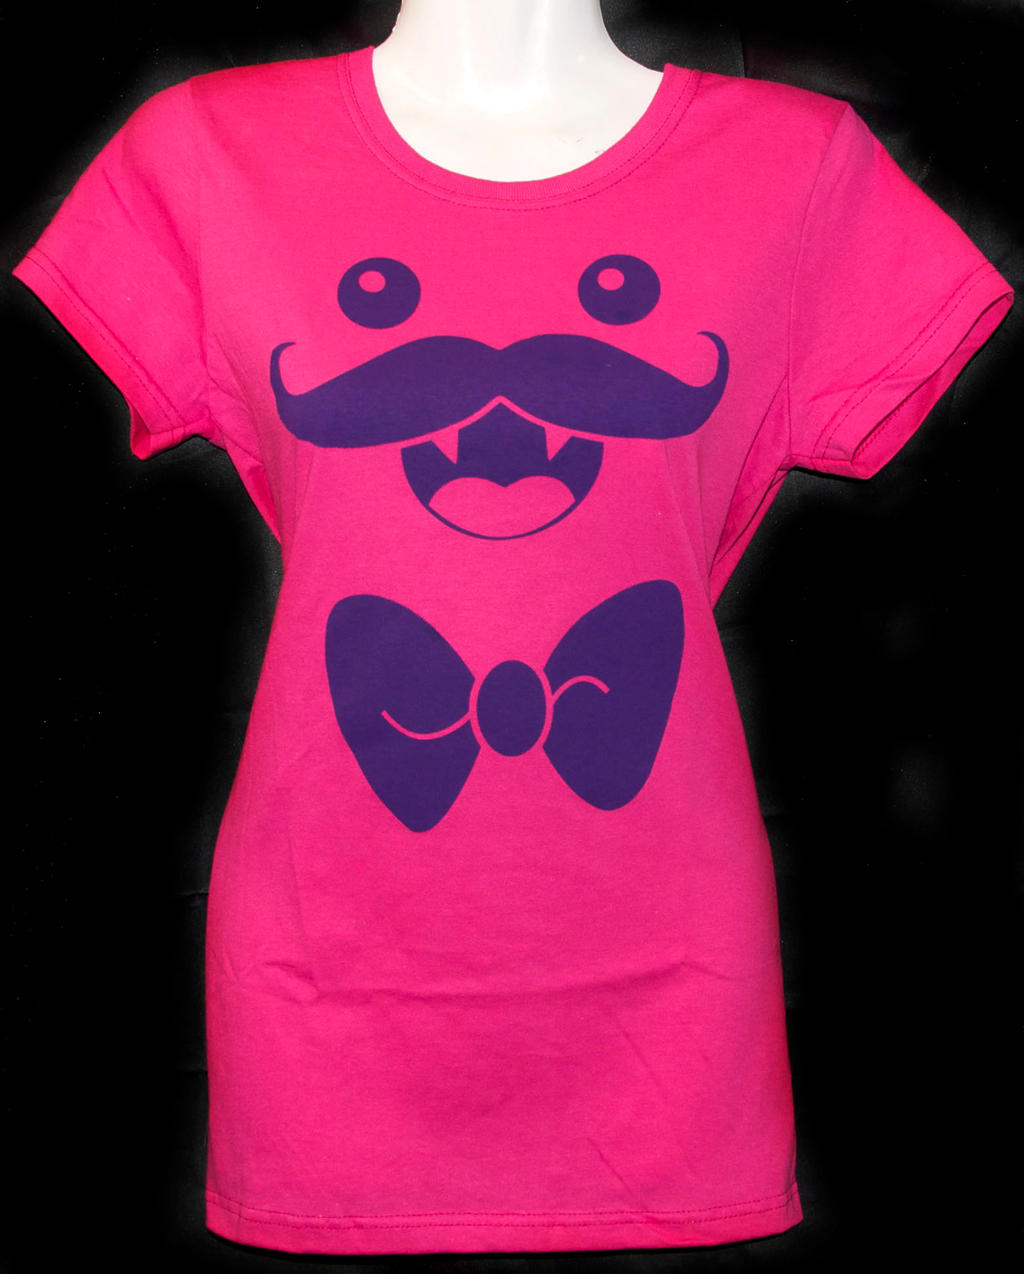 Nigel the Mustachioed Monster Tee by rainbowdreamfactory